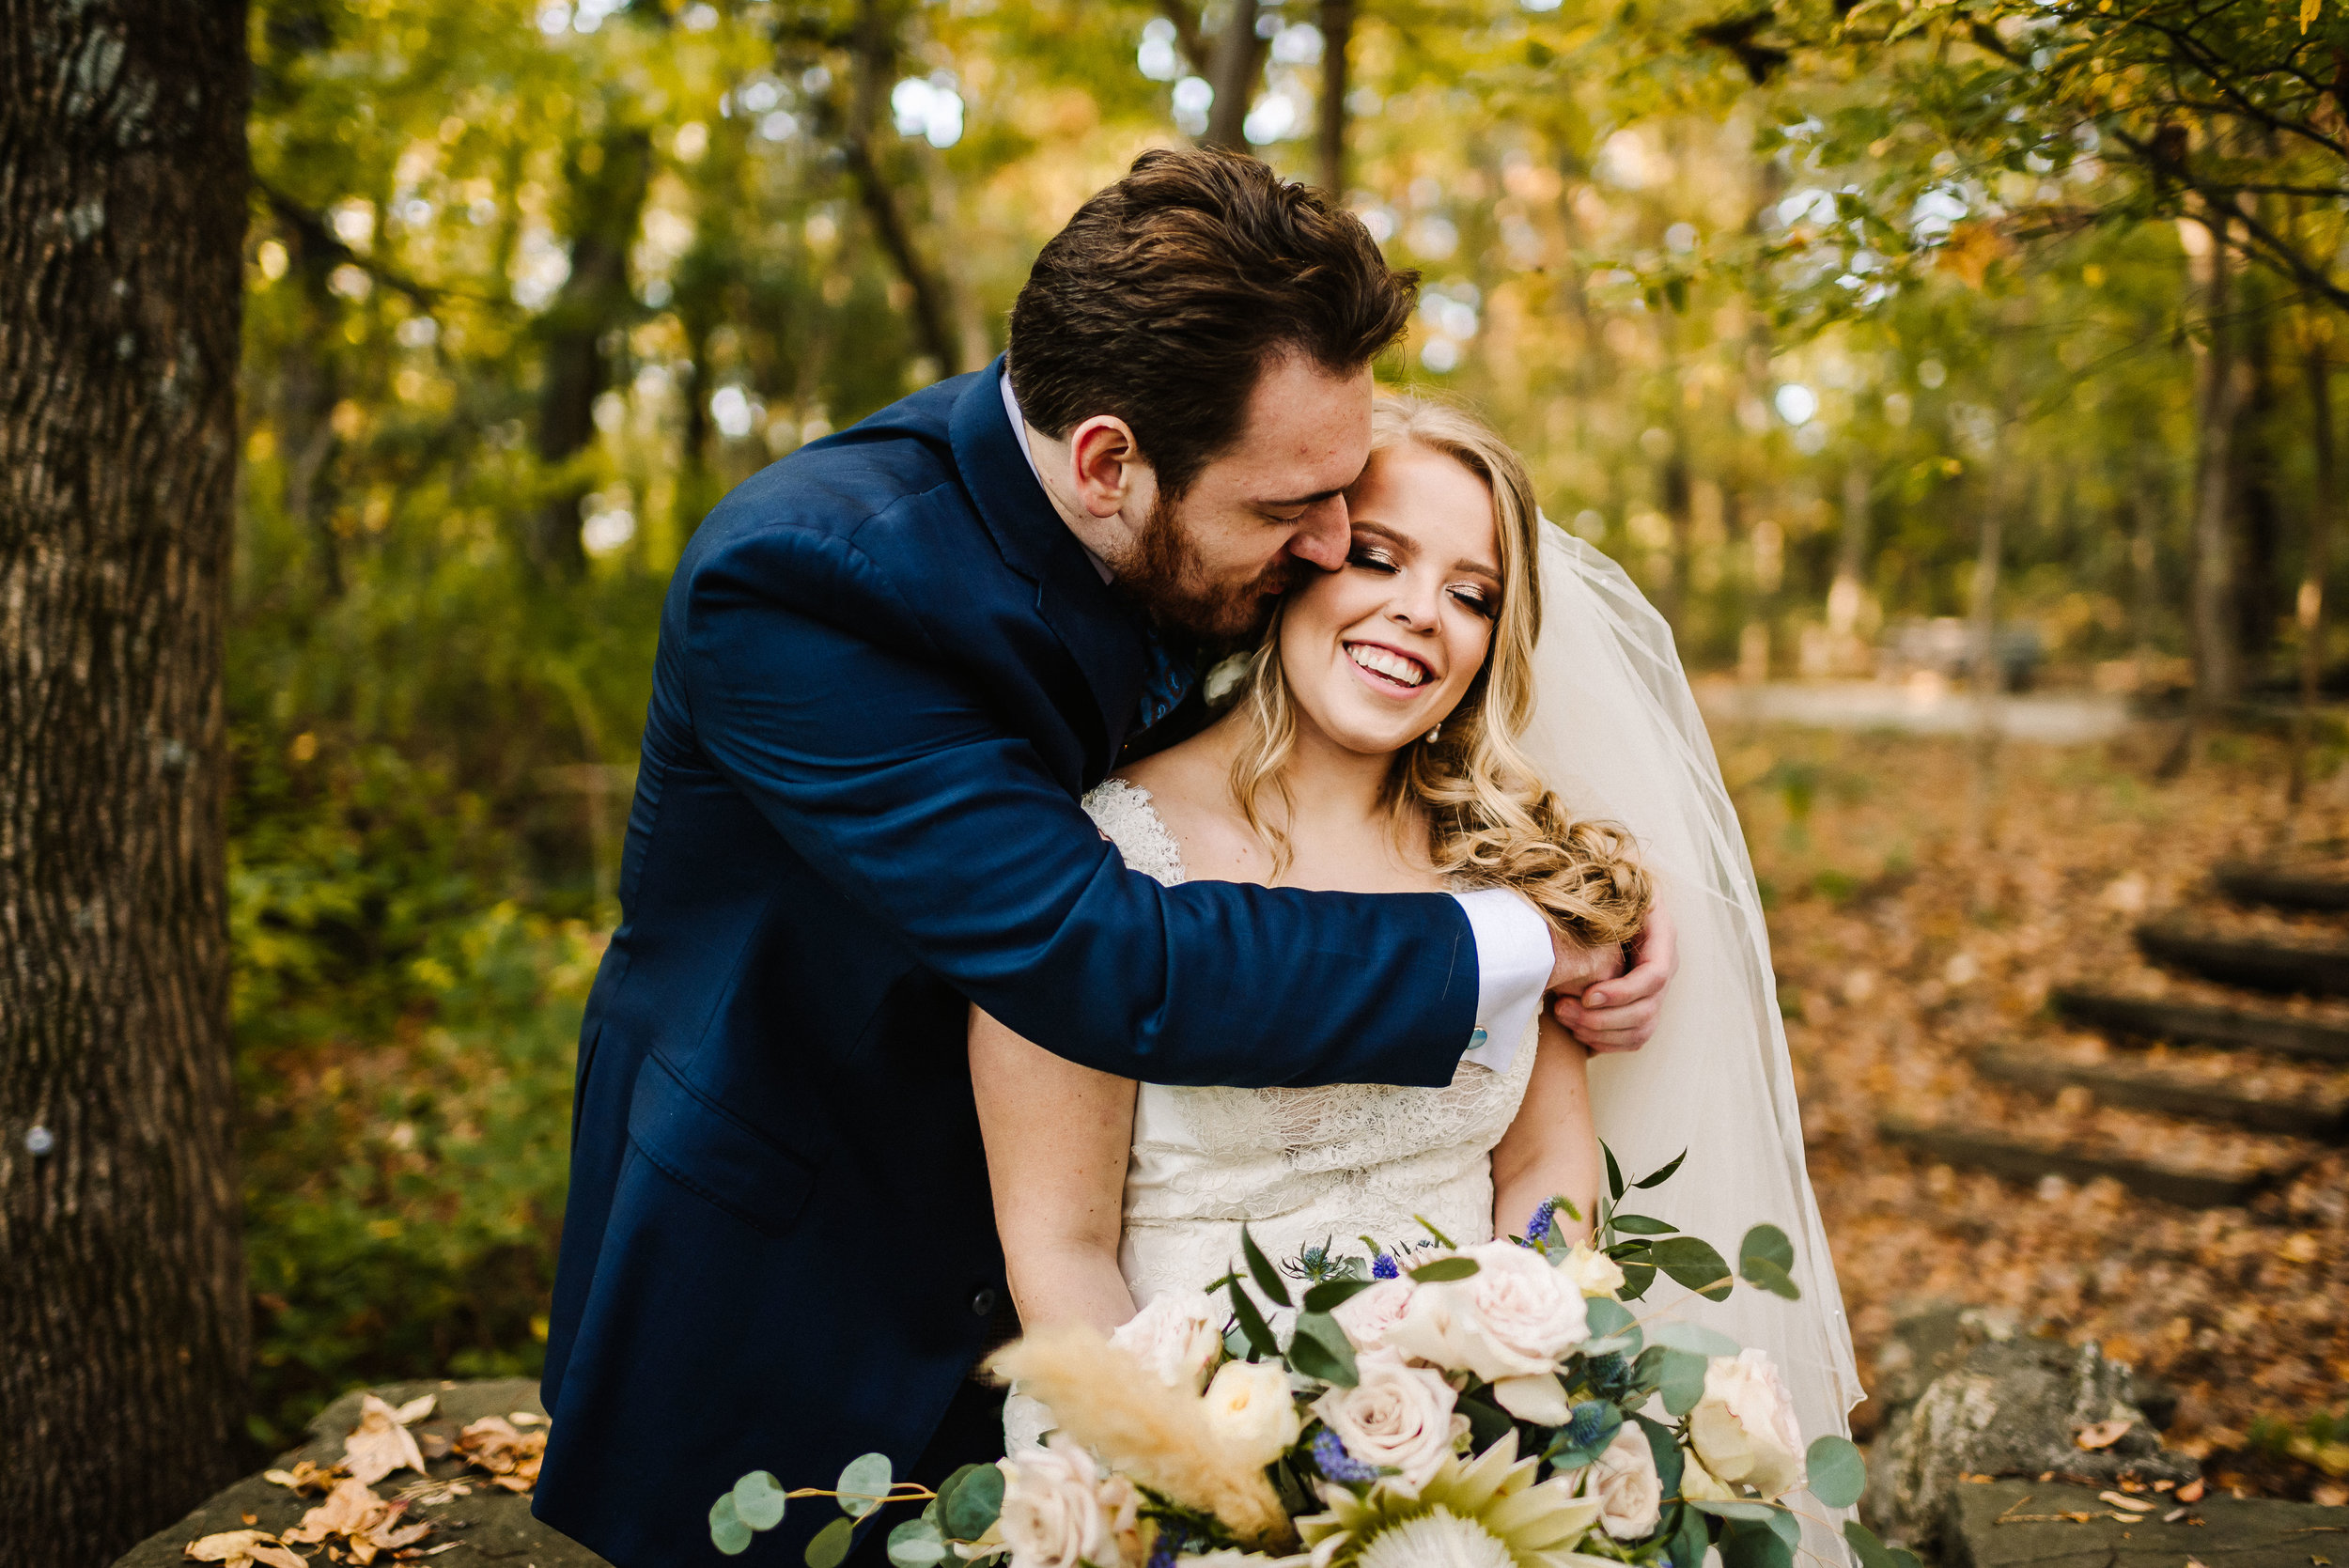 Lichterman Nature Center Wedding_La Croix Wedding_Ashley Benham Photography-493.jpg